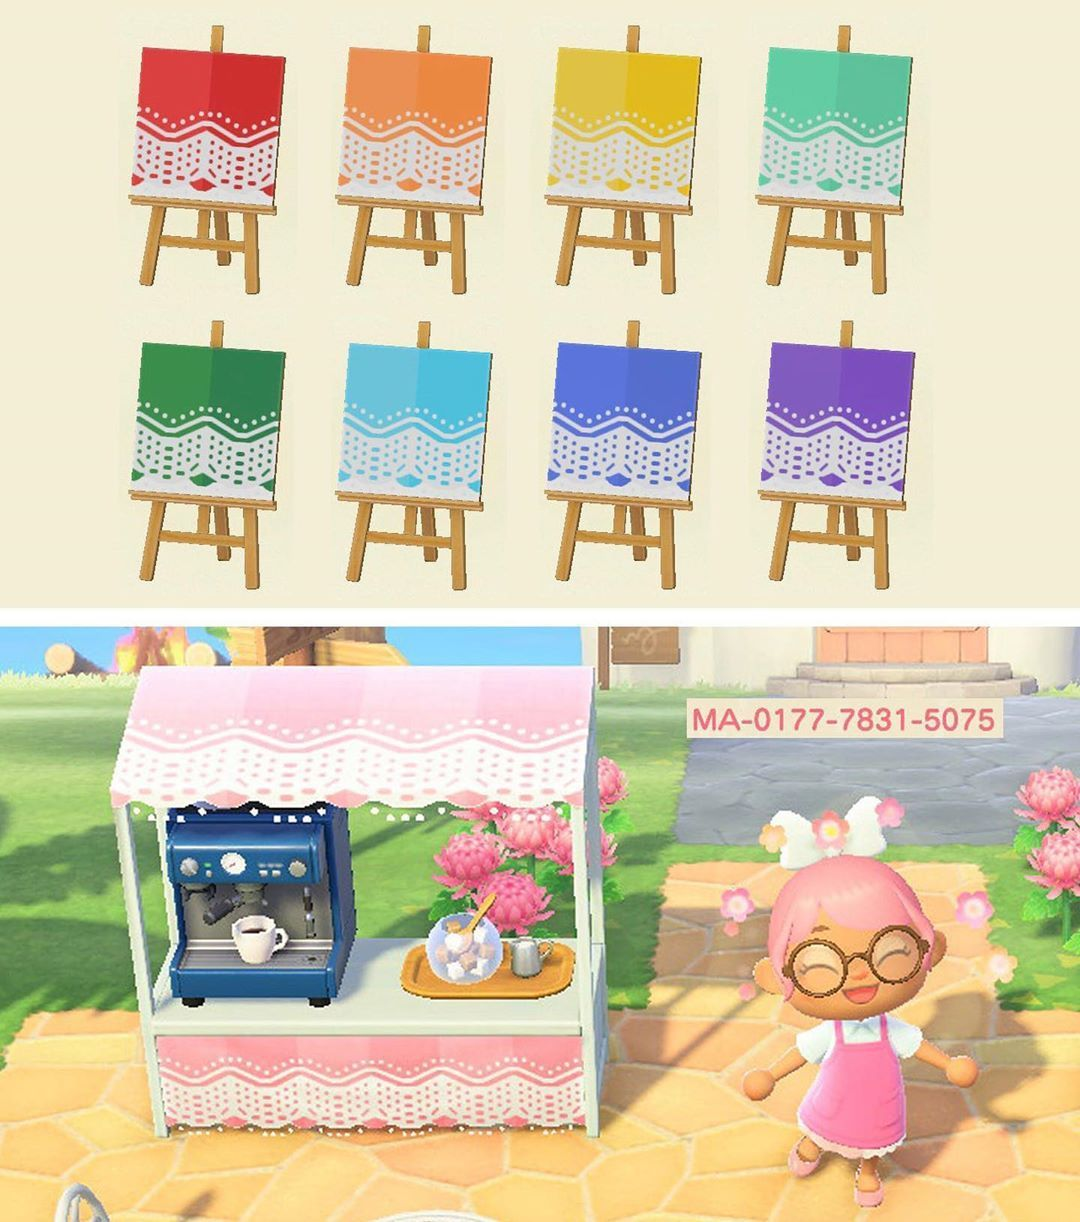 Animal Crossing New Horizons On Instagram Cute Lace Stall Designs Credit To Moriastra On Reddit Crea Animal Crossing New Animal Crossing Animal Crossing Qr